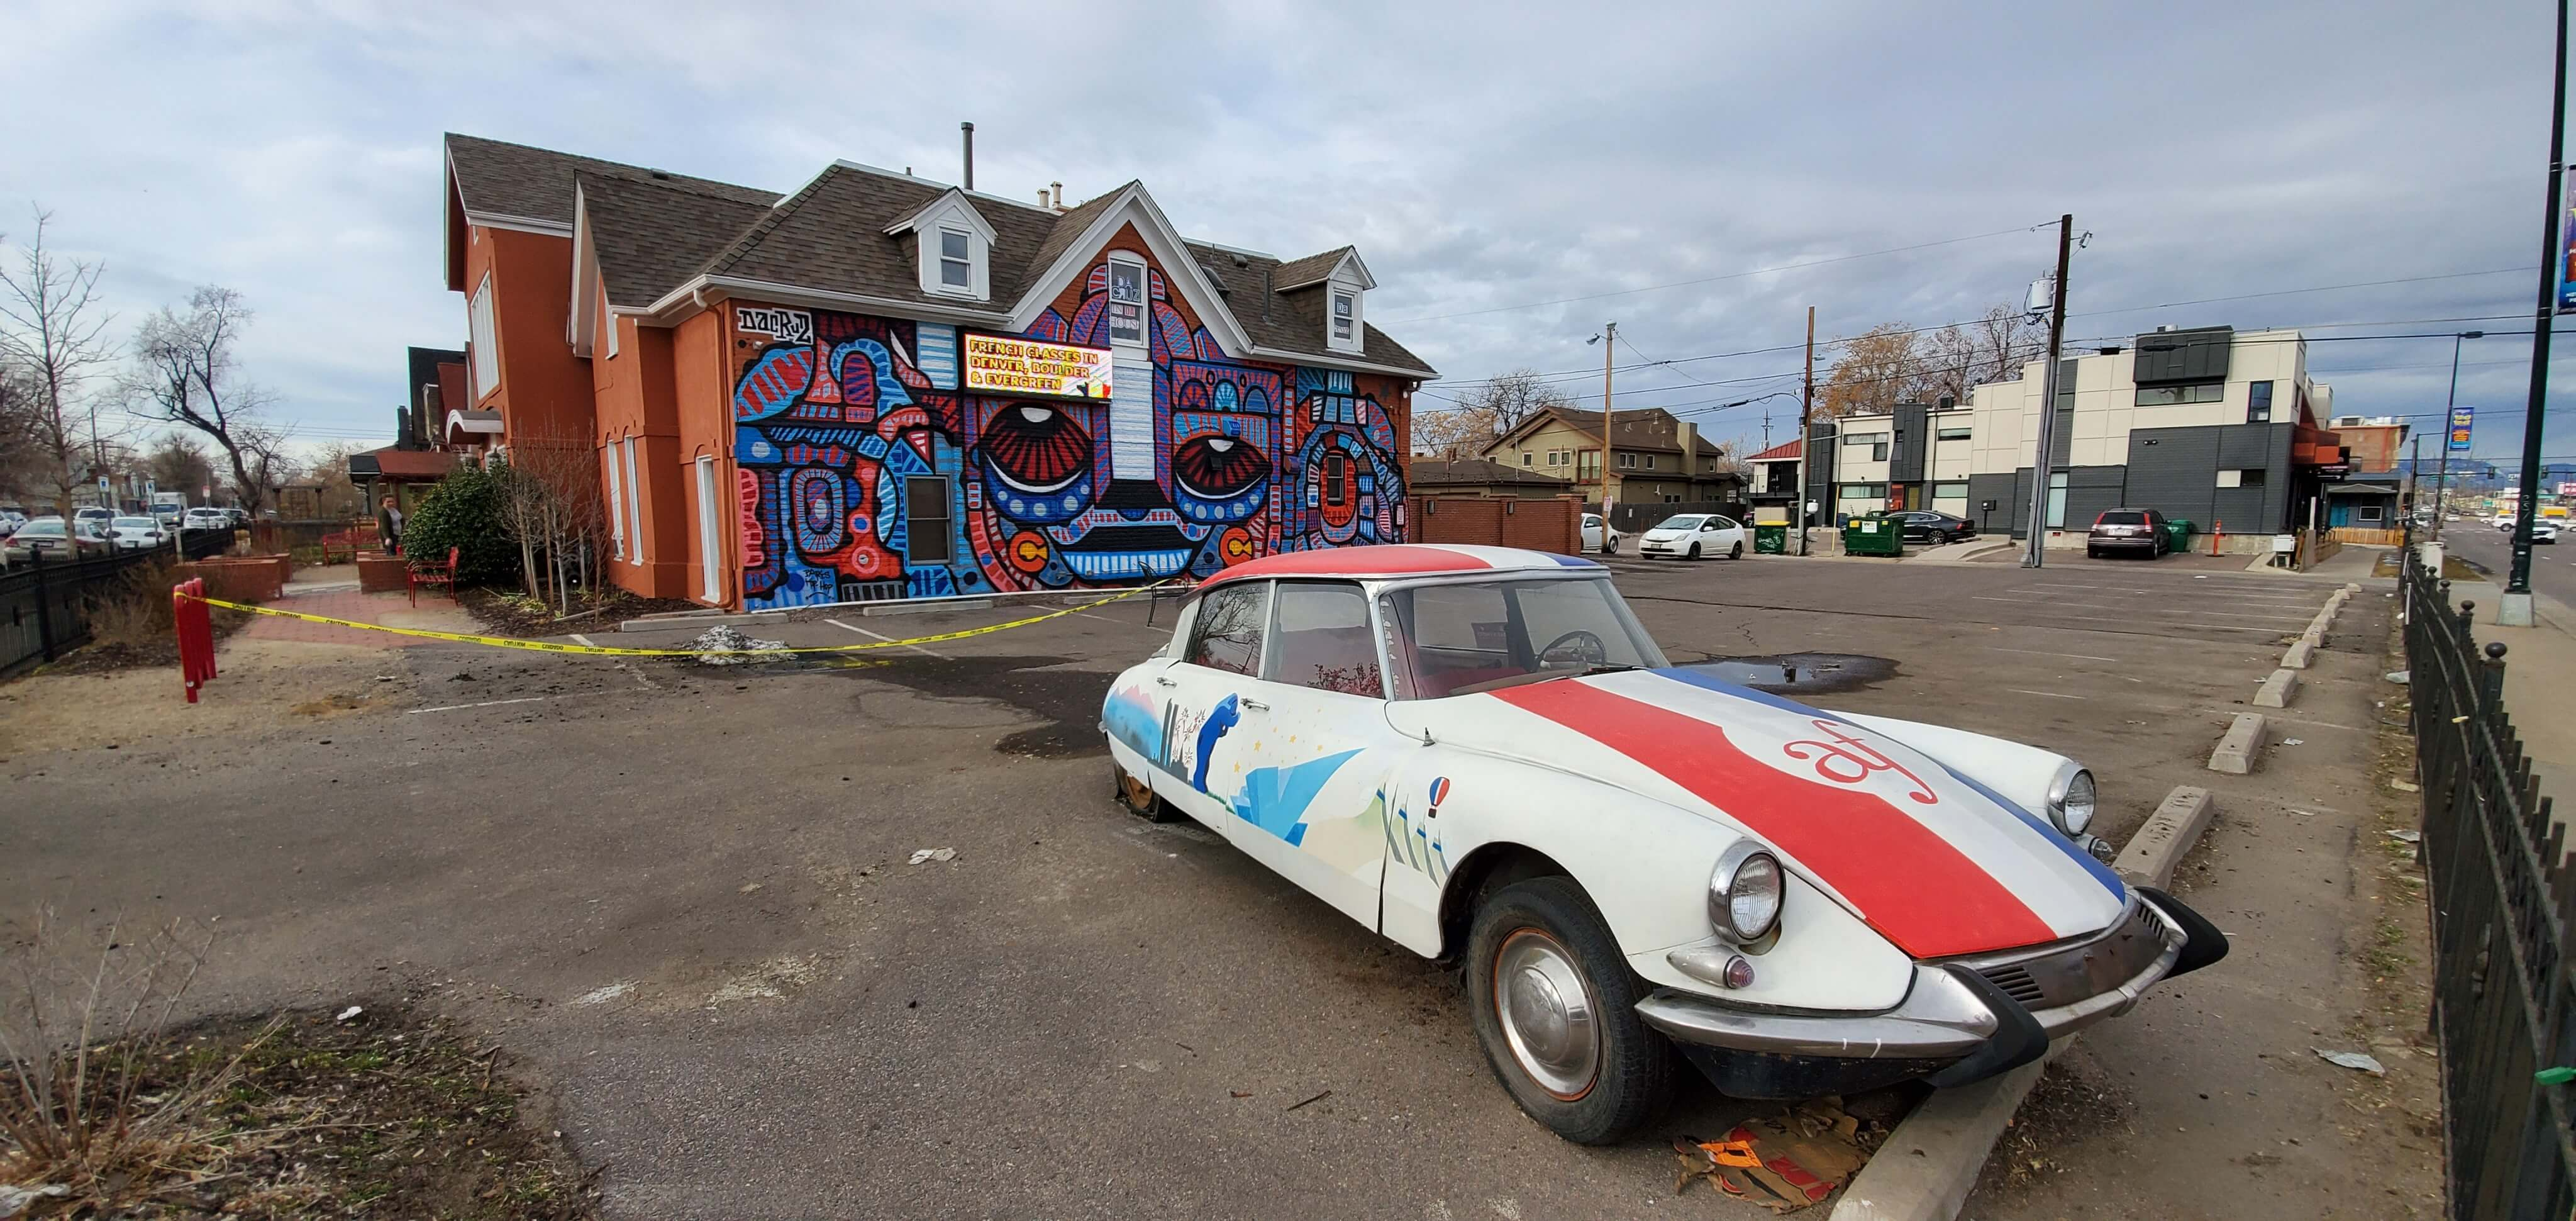 THE AFD'S 1964 CITROËN DS – A NEW FRENCH LANDMARK IN DENVER!